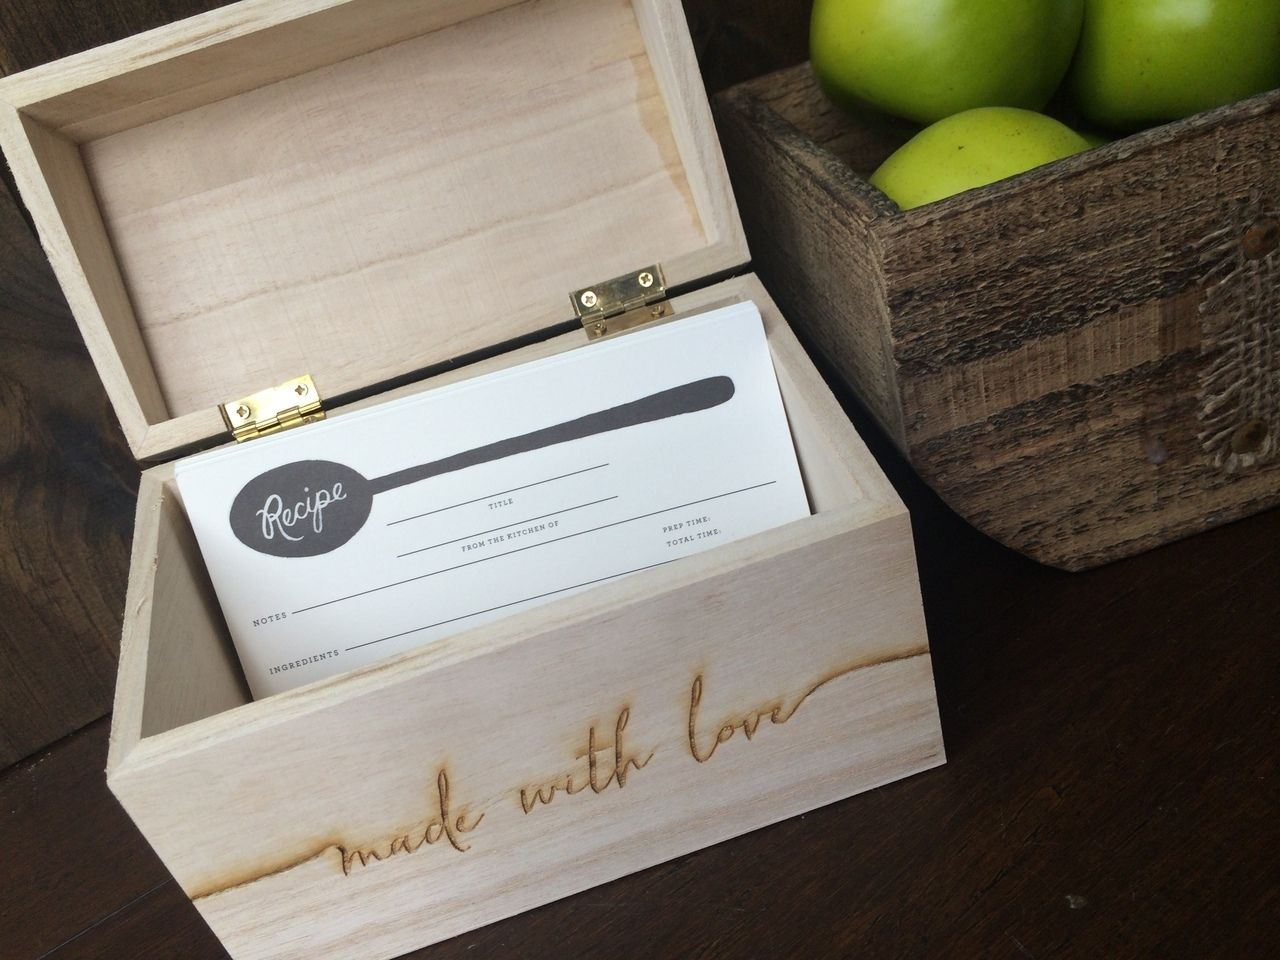 Made with Love Personalized Recipe Box Made